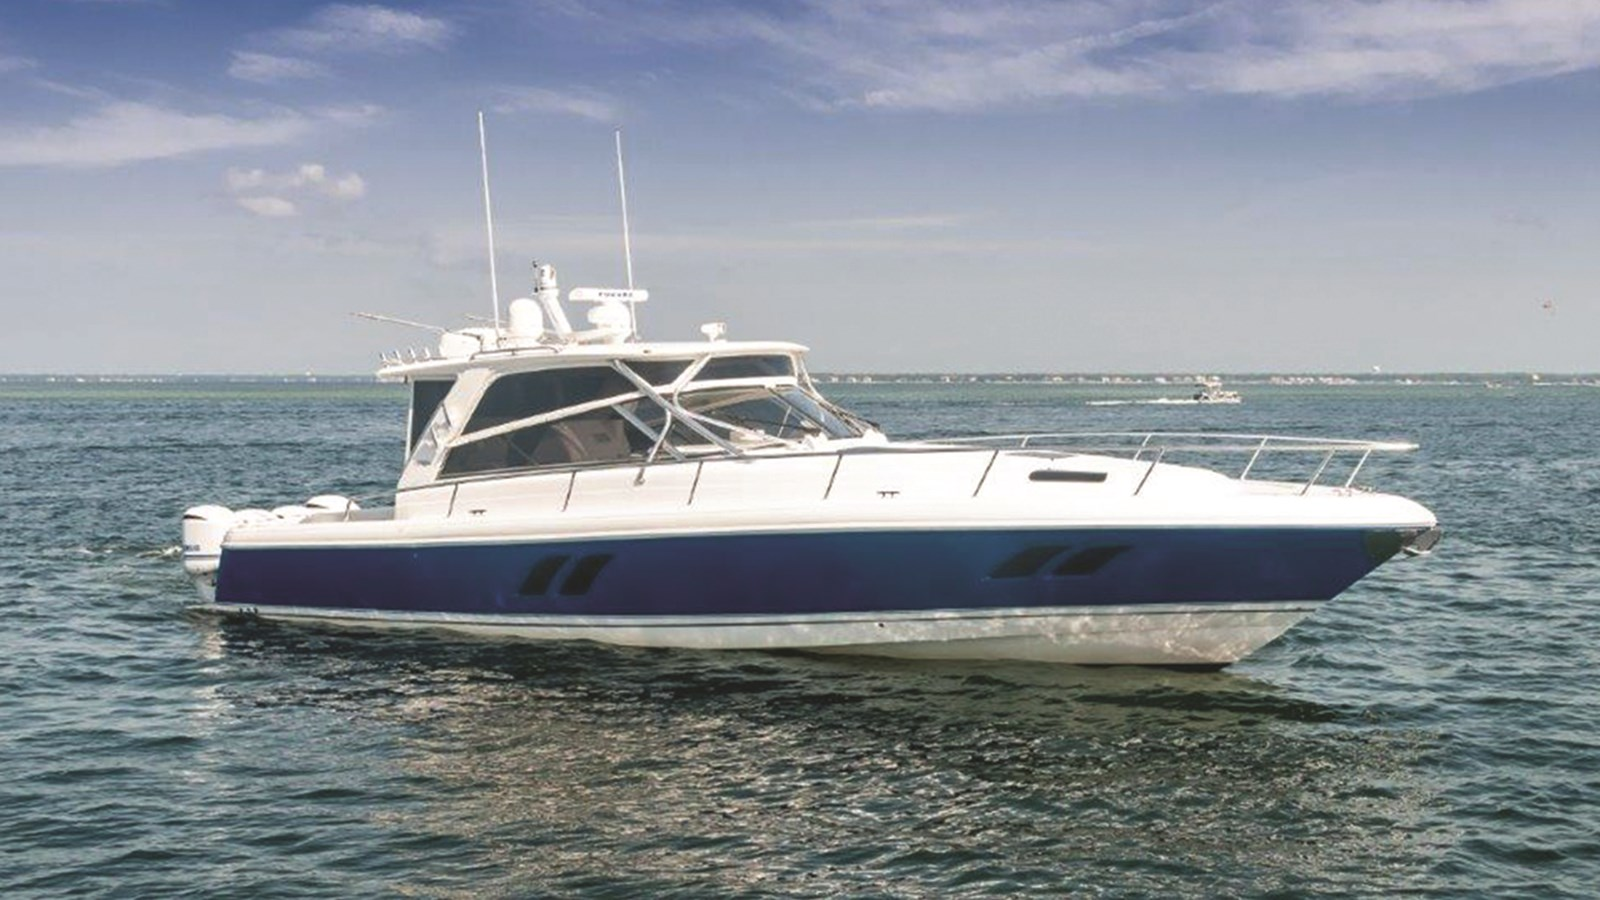 2010 INTREPID 475 SPORT YACHT For Sale